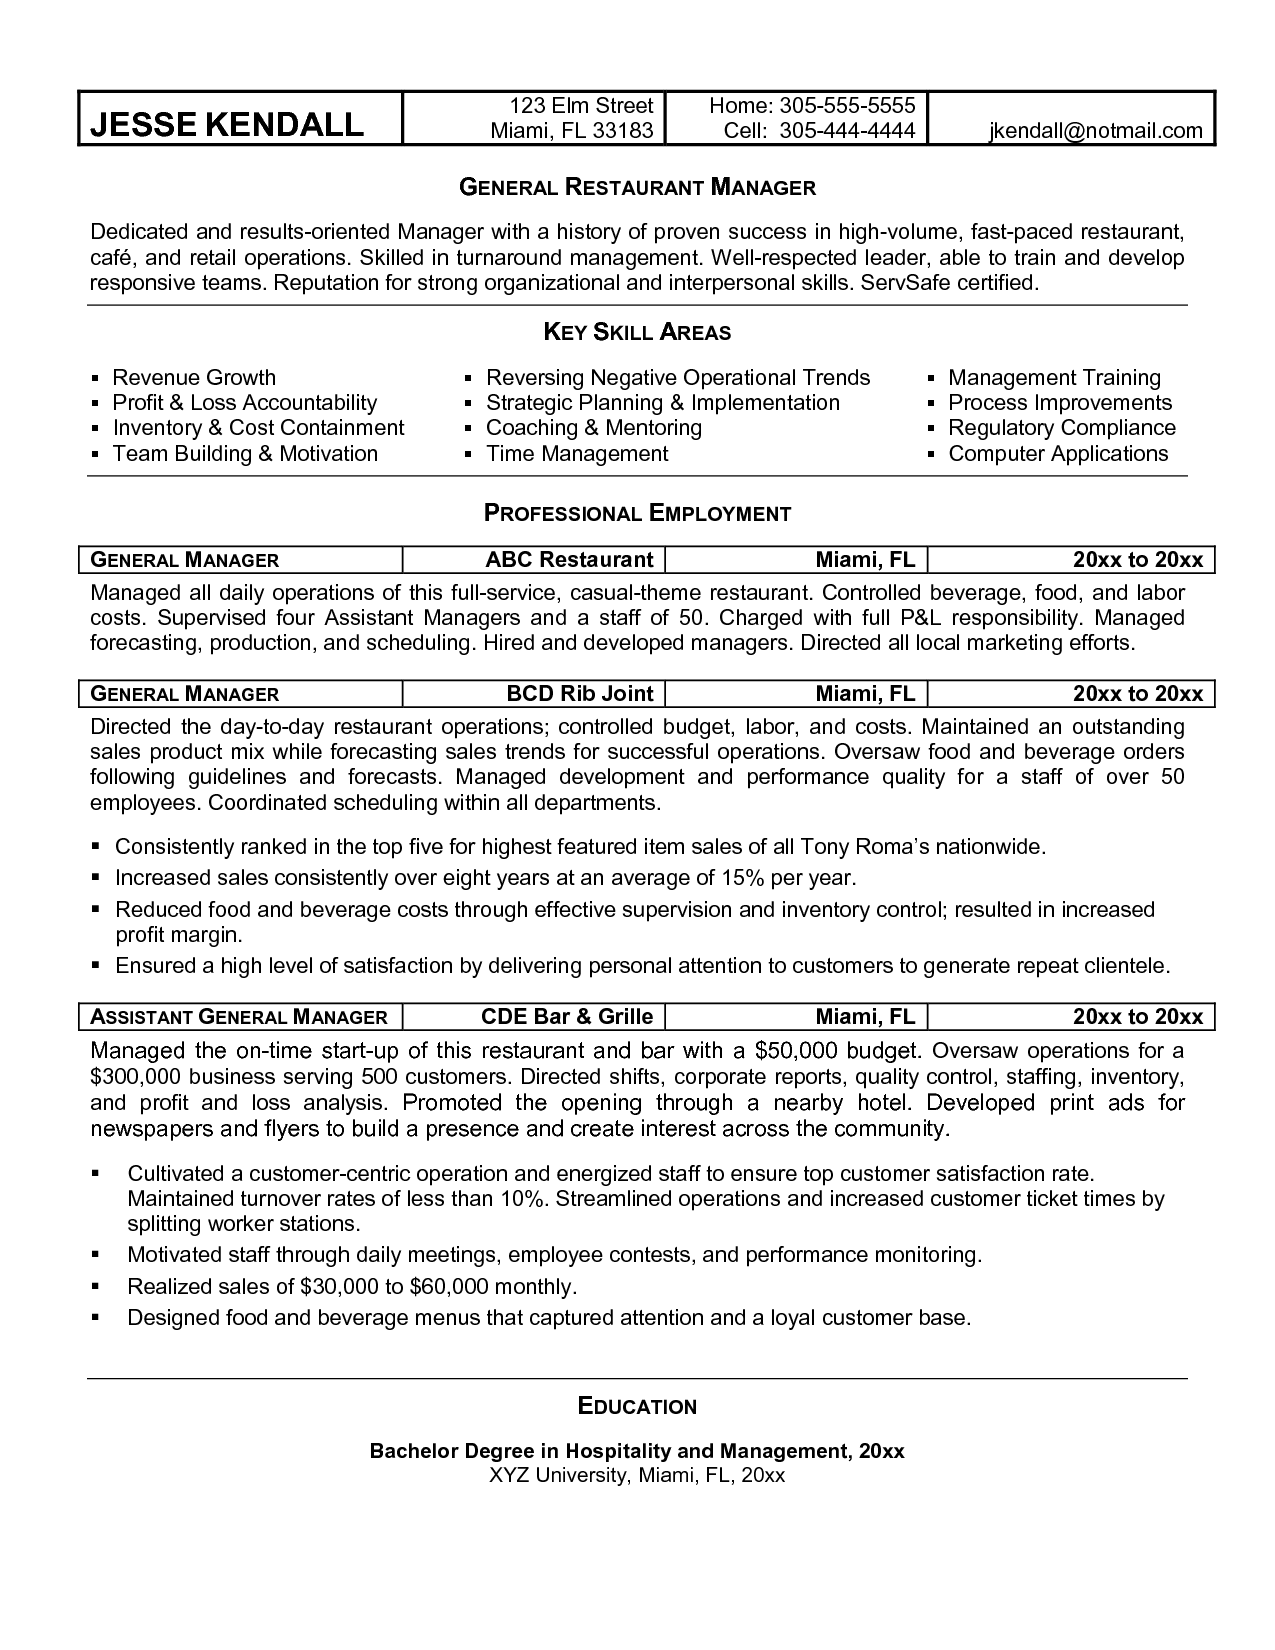 General Manager Resume Example  HttpWwwResumecareerInfo